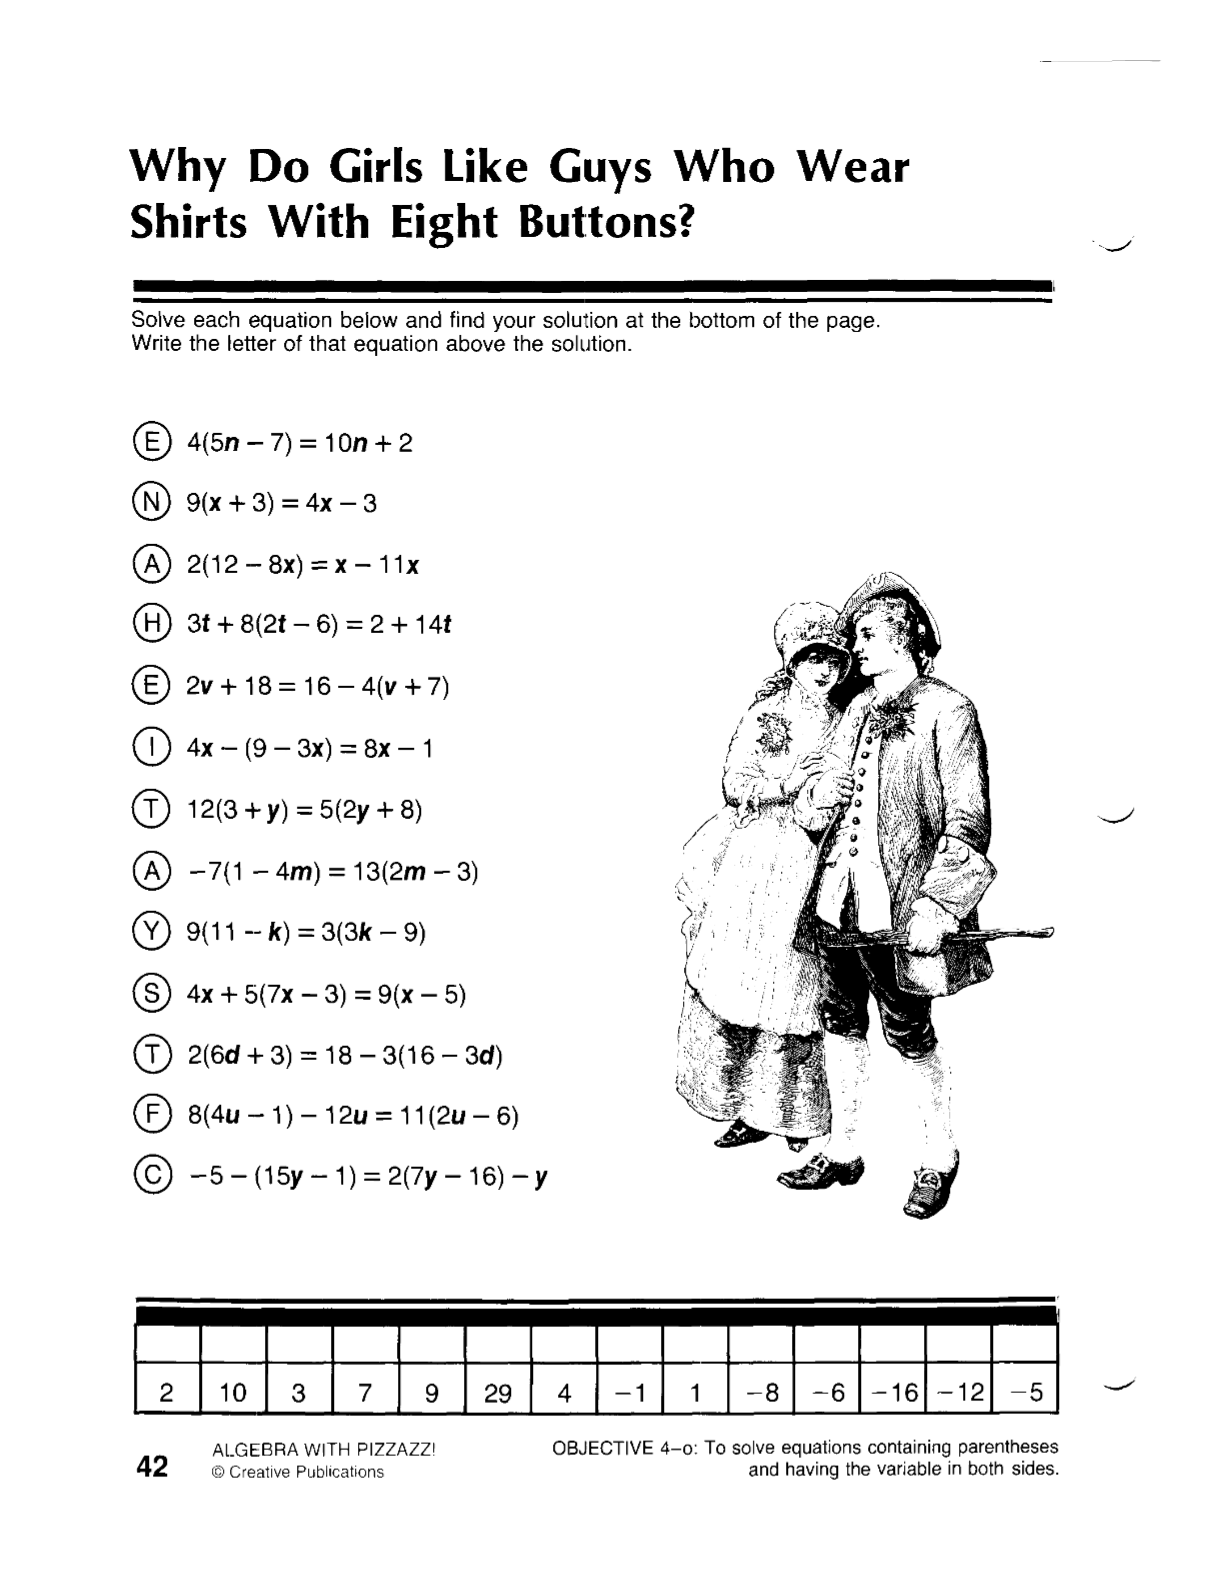 Printables Algebra 1 Review Worksheet algebra i mr g 817 activity 30 by design 818 33 1 hmh textbook p 9 26 819 multi step equations worksheet 1